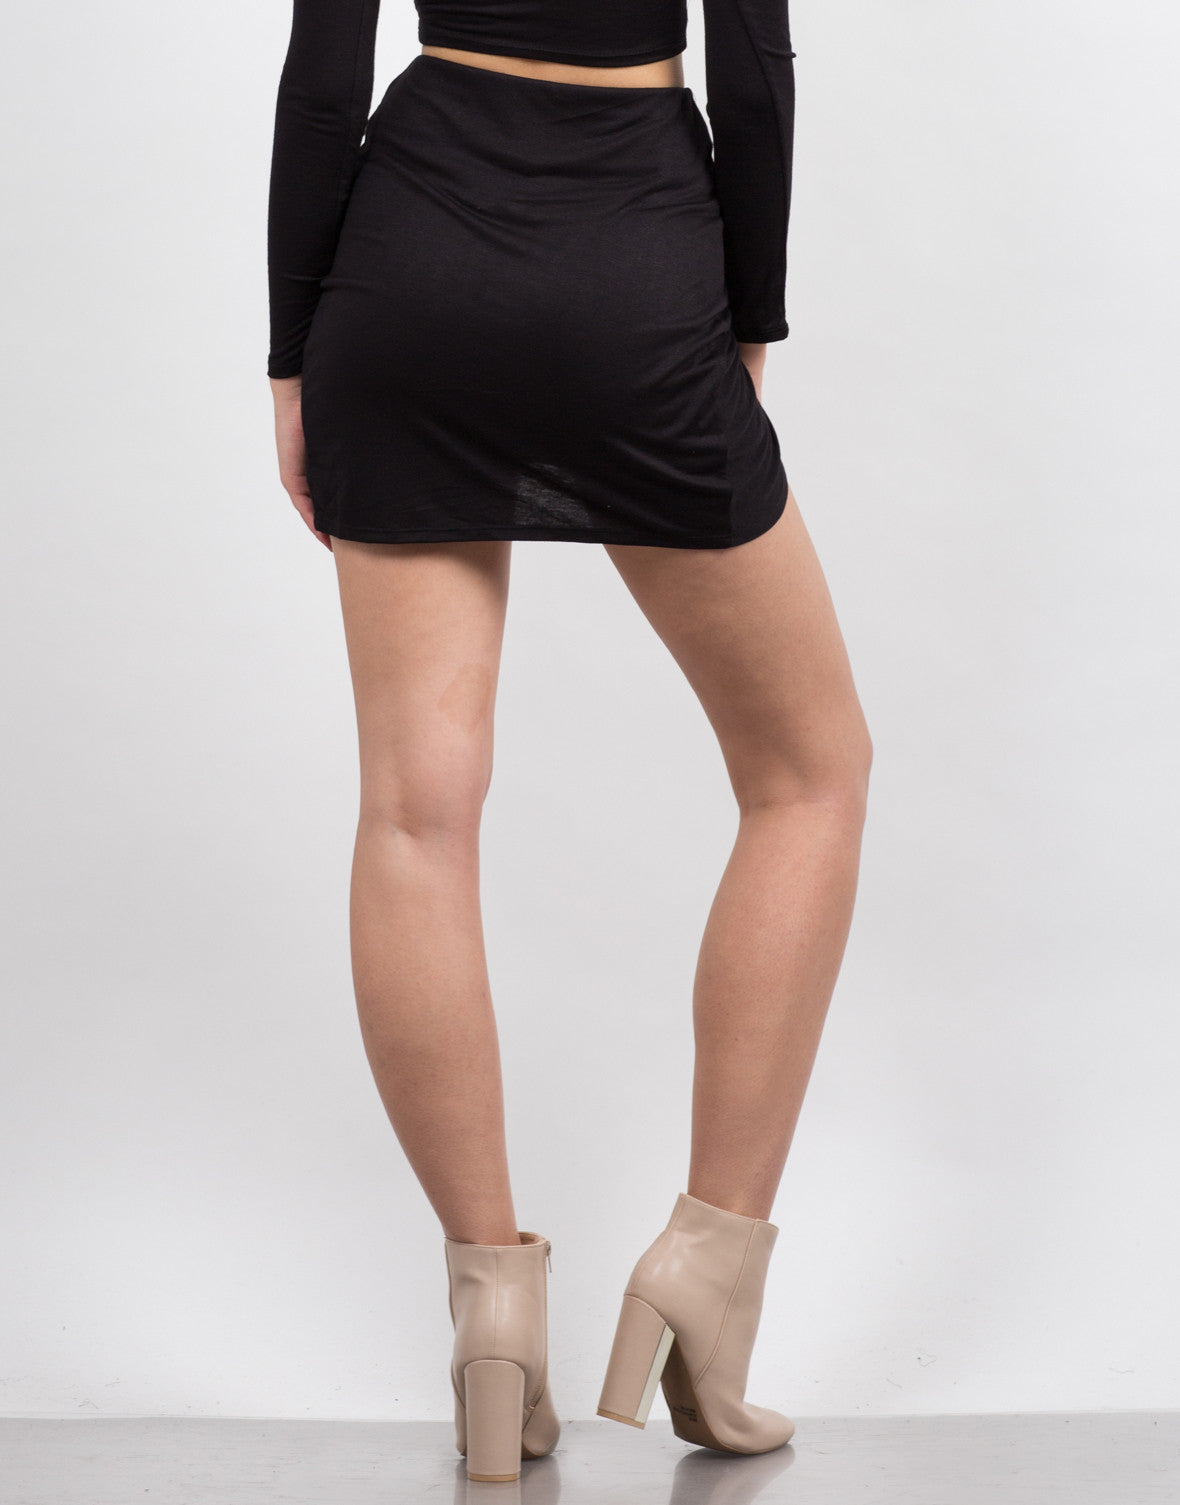 Back View of Knot It Mini Skirt